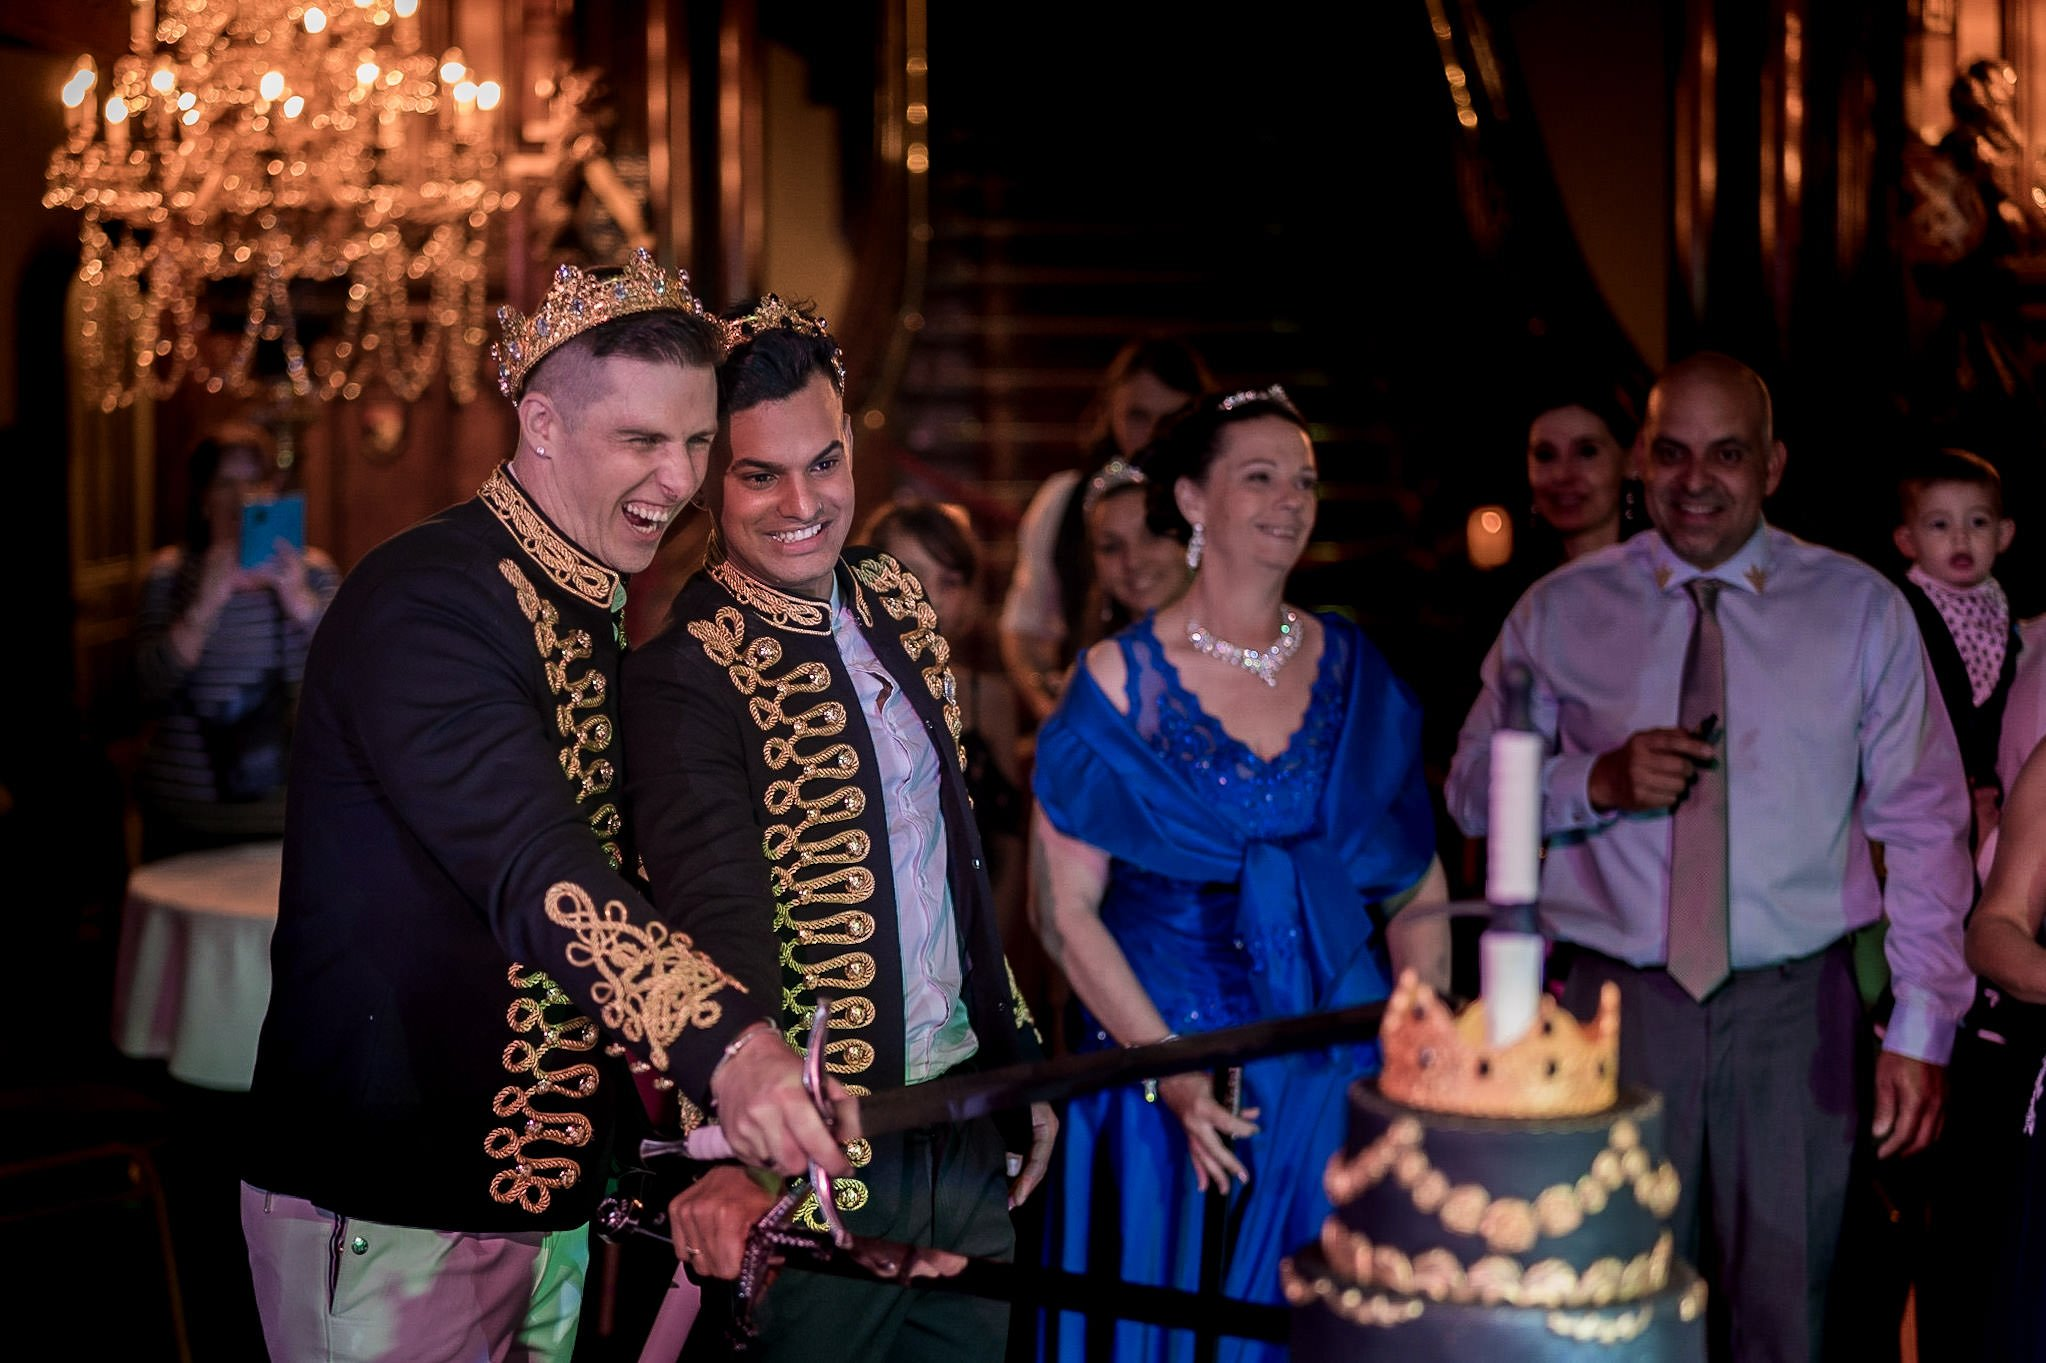 Allerton Castle Knaresborough Hutchinson Weddings Photography husband and husband cutting the cake with their swords